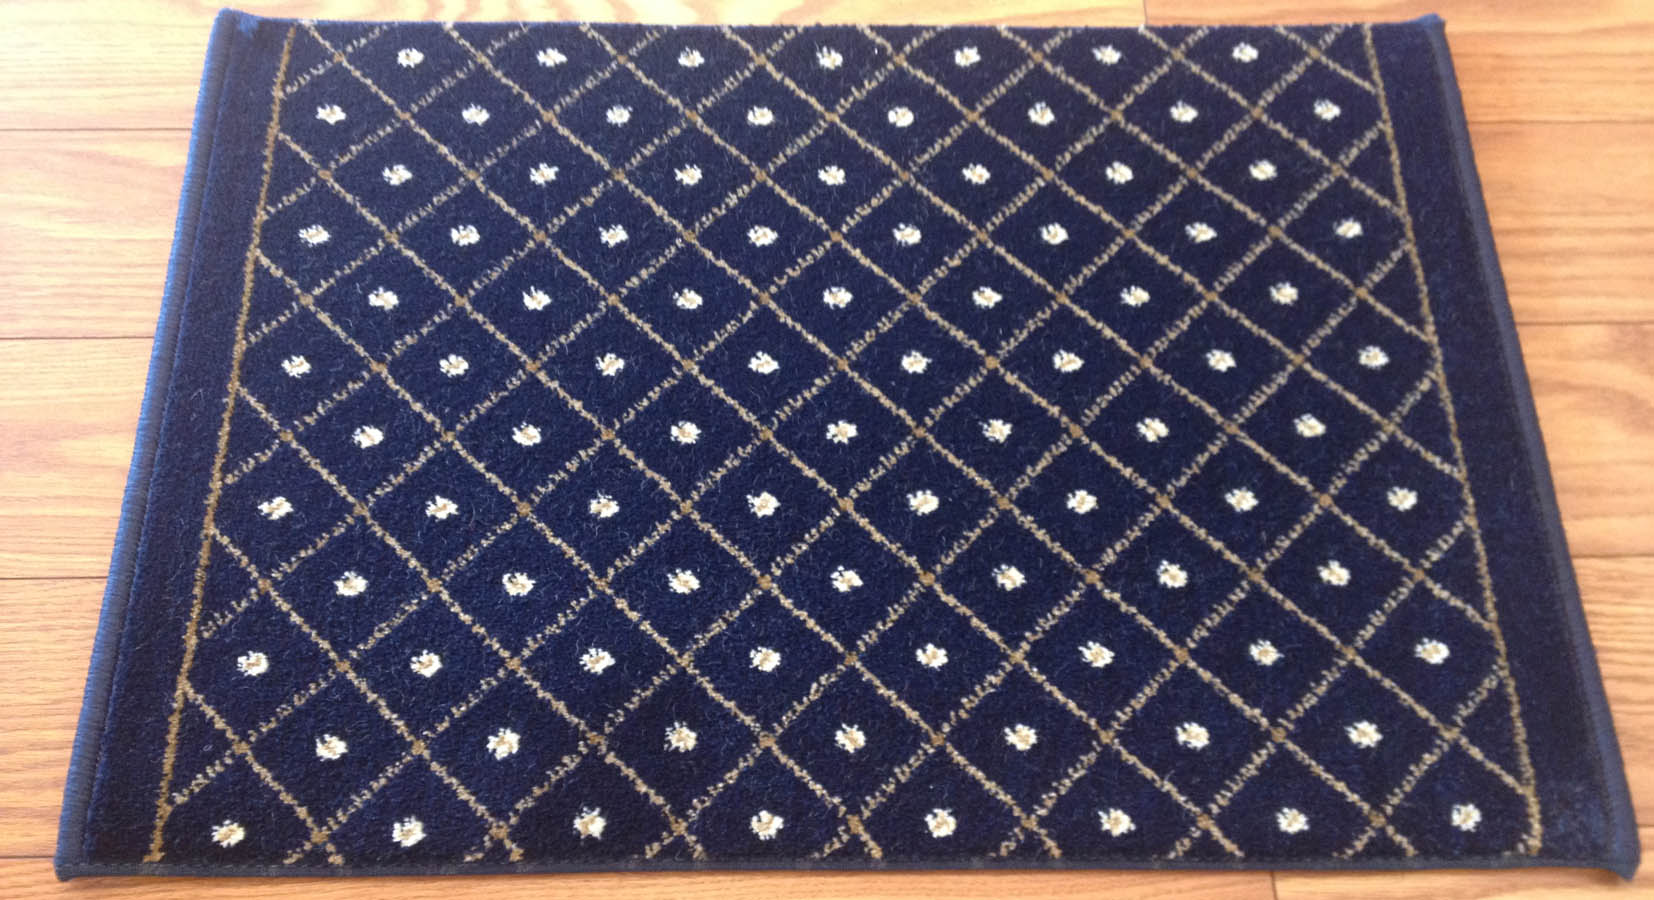 Como 782 Navy Carpet Hallway And Stair Runner 26 Quot X 29 Ft